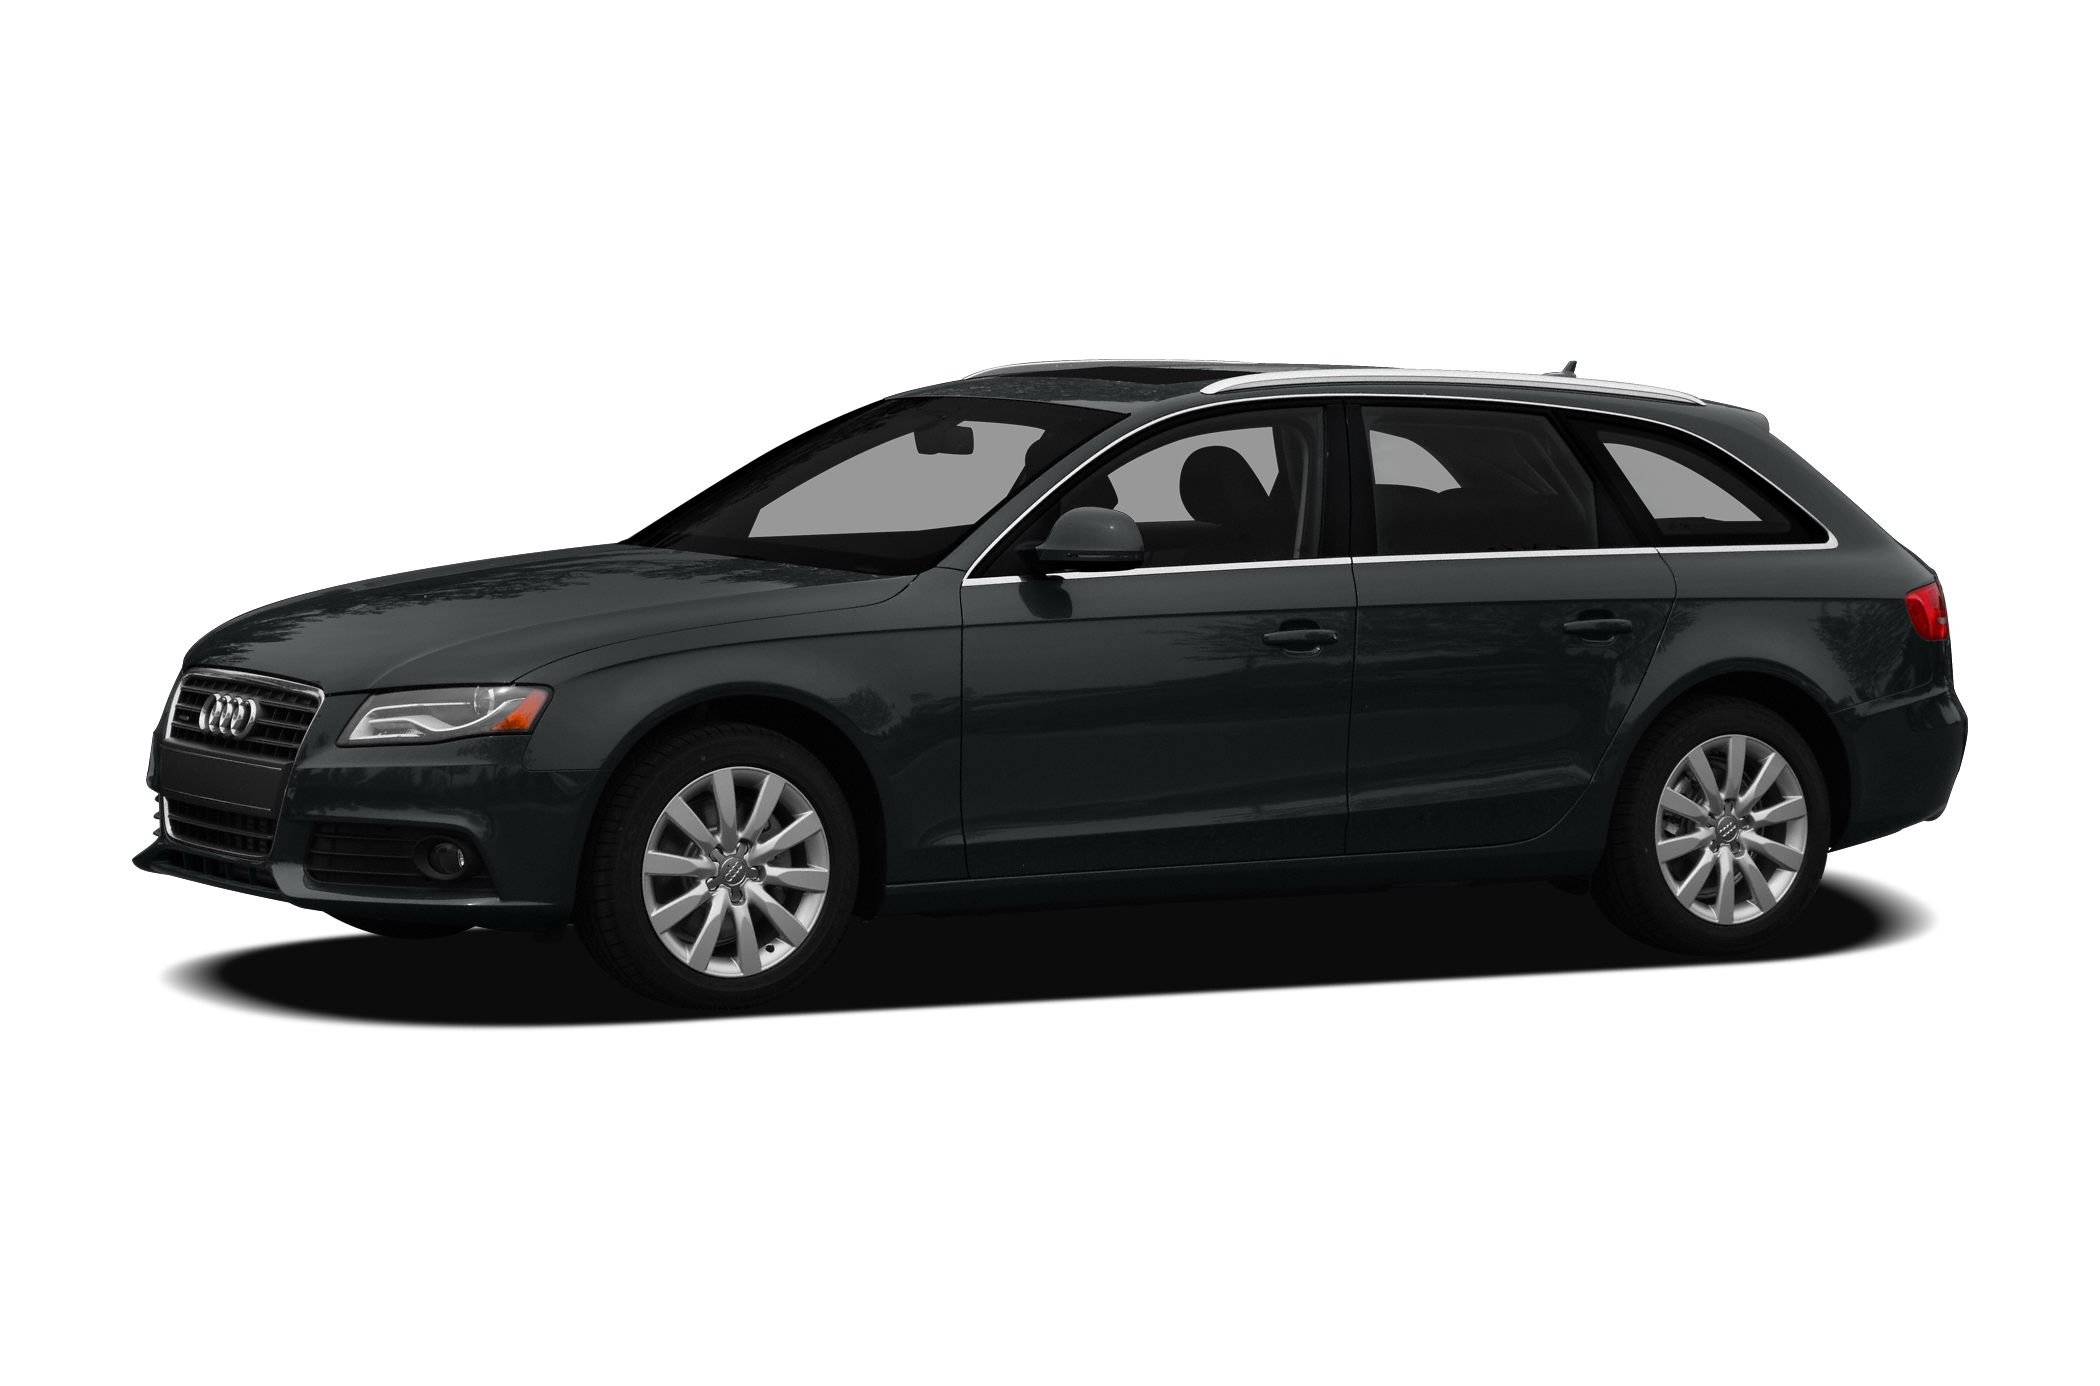 2009 Audi A4 20T Avant quattro Premium  WHEN IT COMES TO EXCELLENCE IN USED CAR SALES YOU KNO